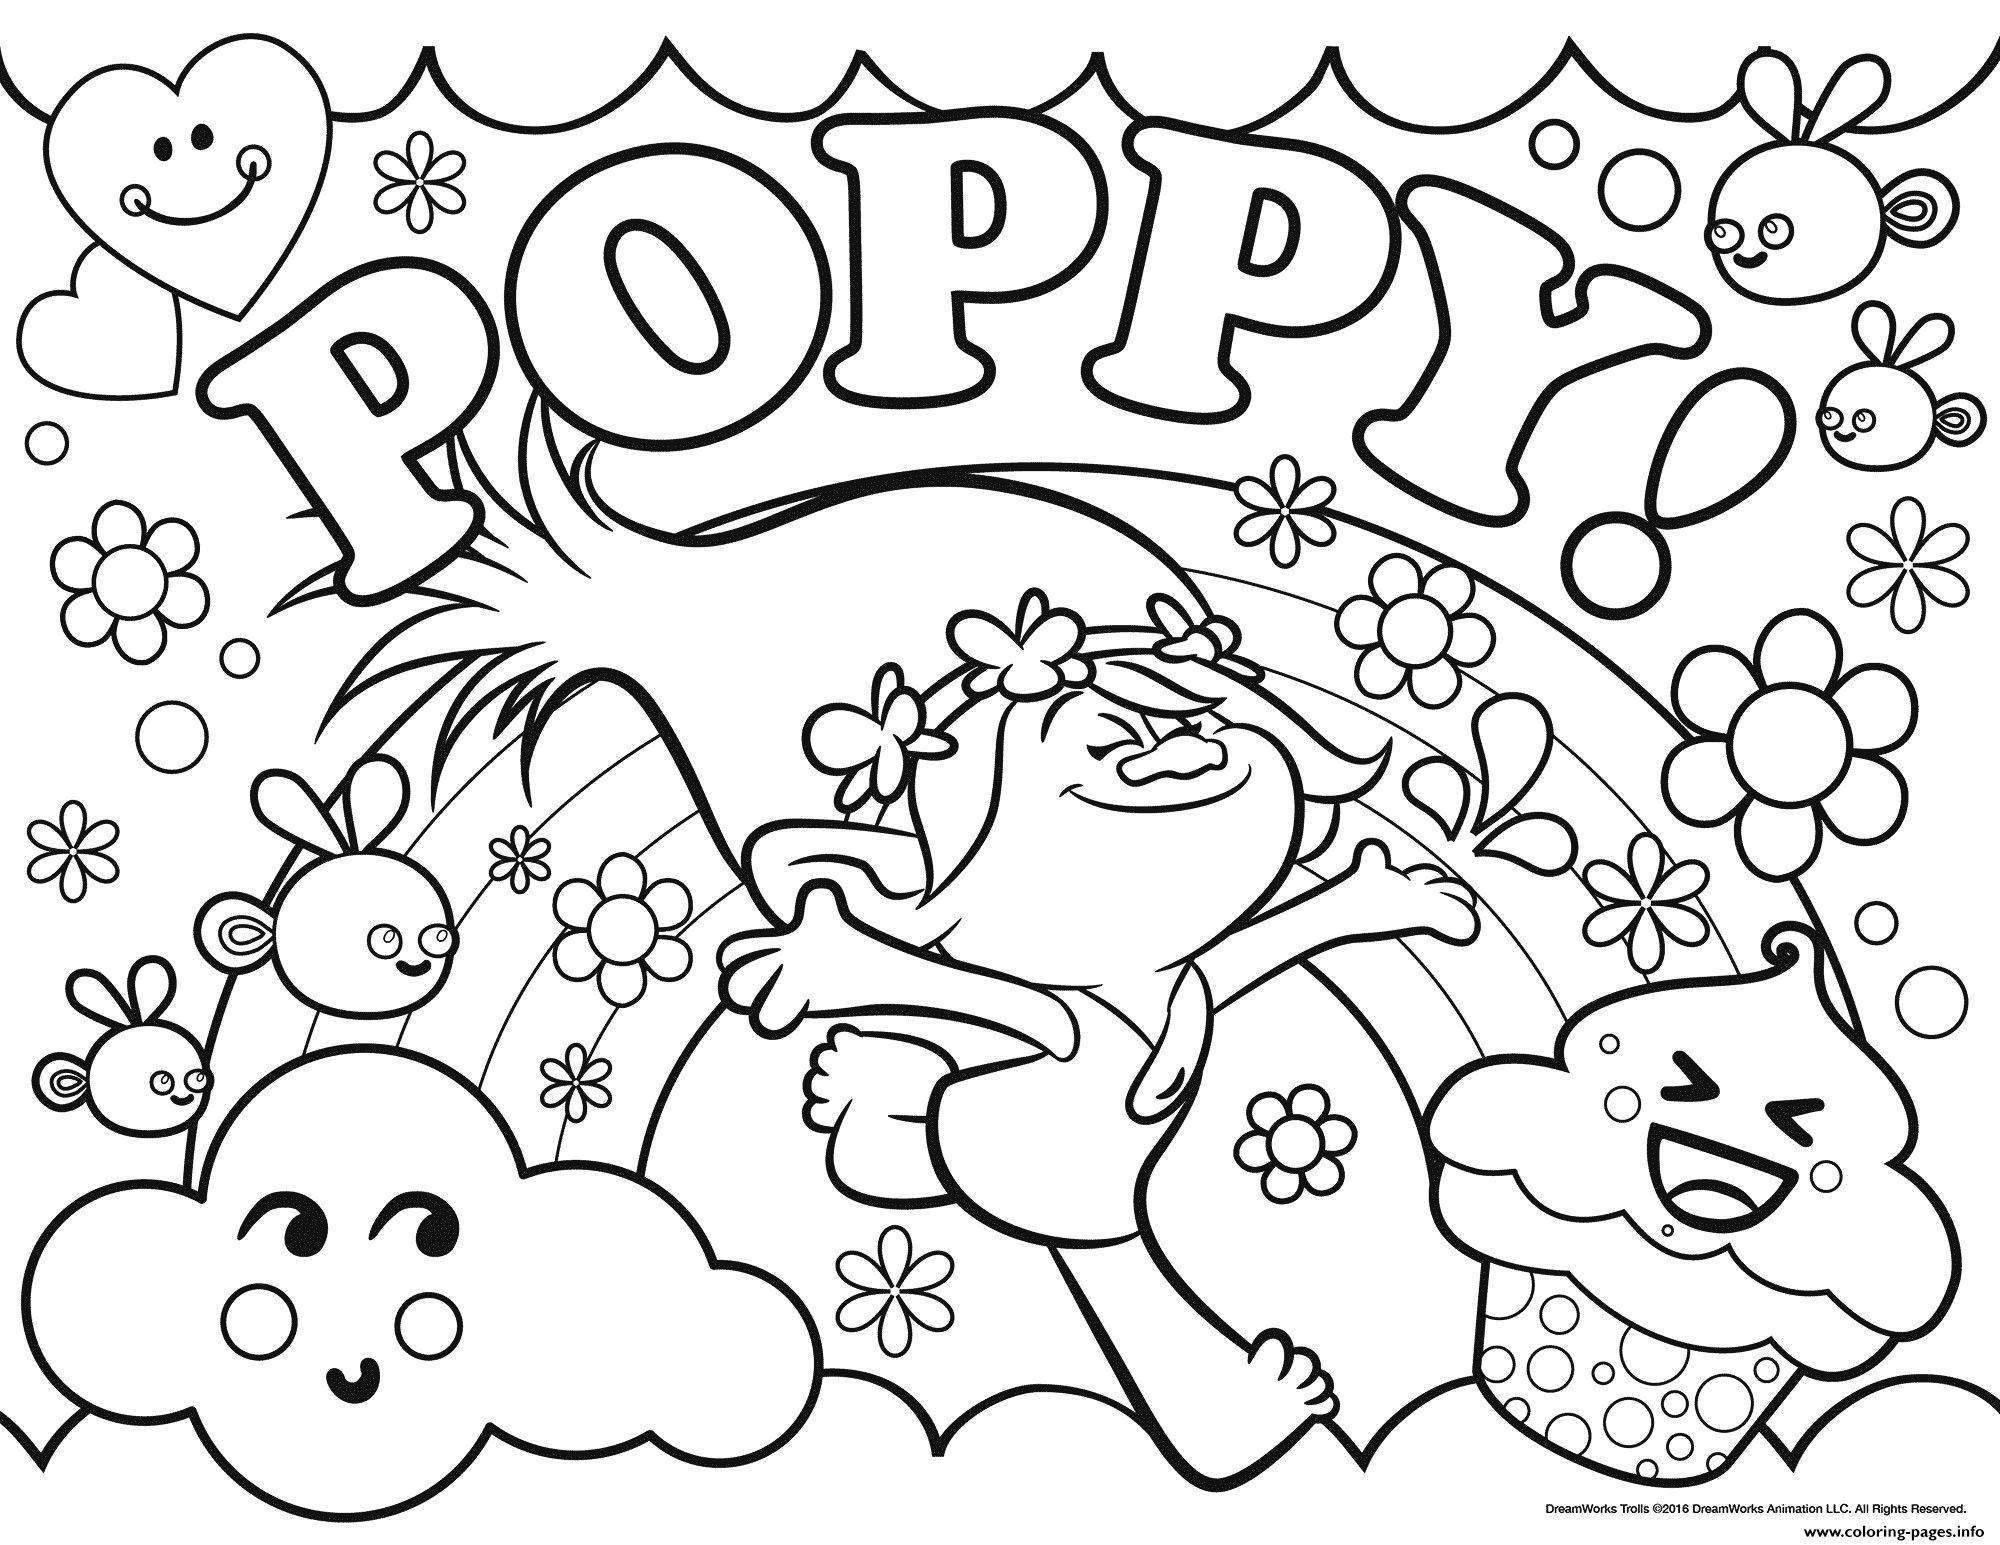 Trolls Clipart Coloring Pages Through The Thousands Of